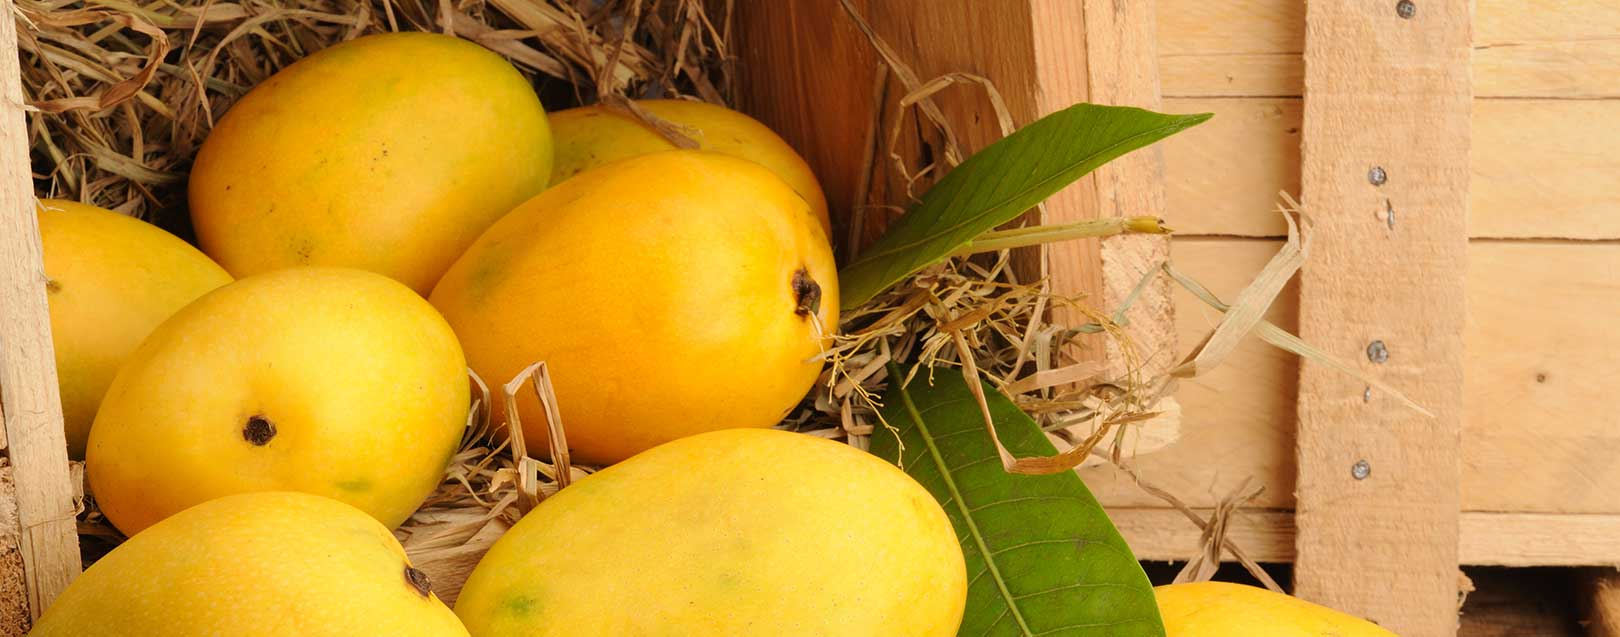 Mango exports to be down this year as production drop by 70% in UP